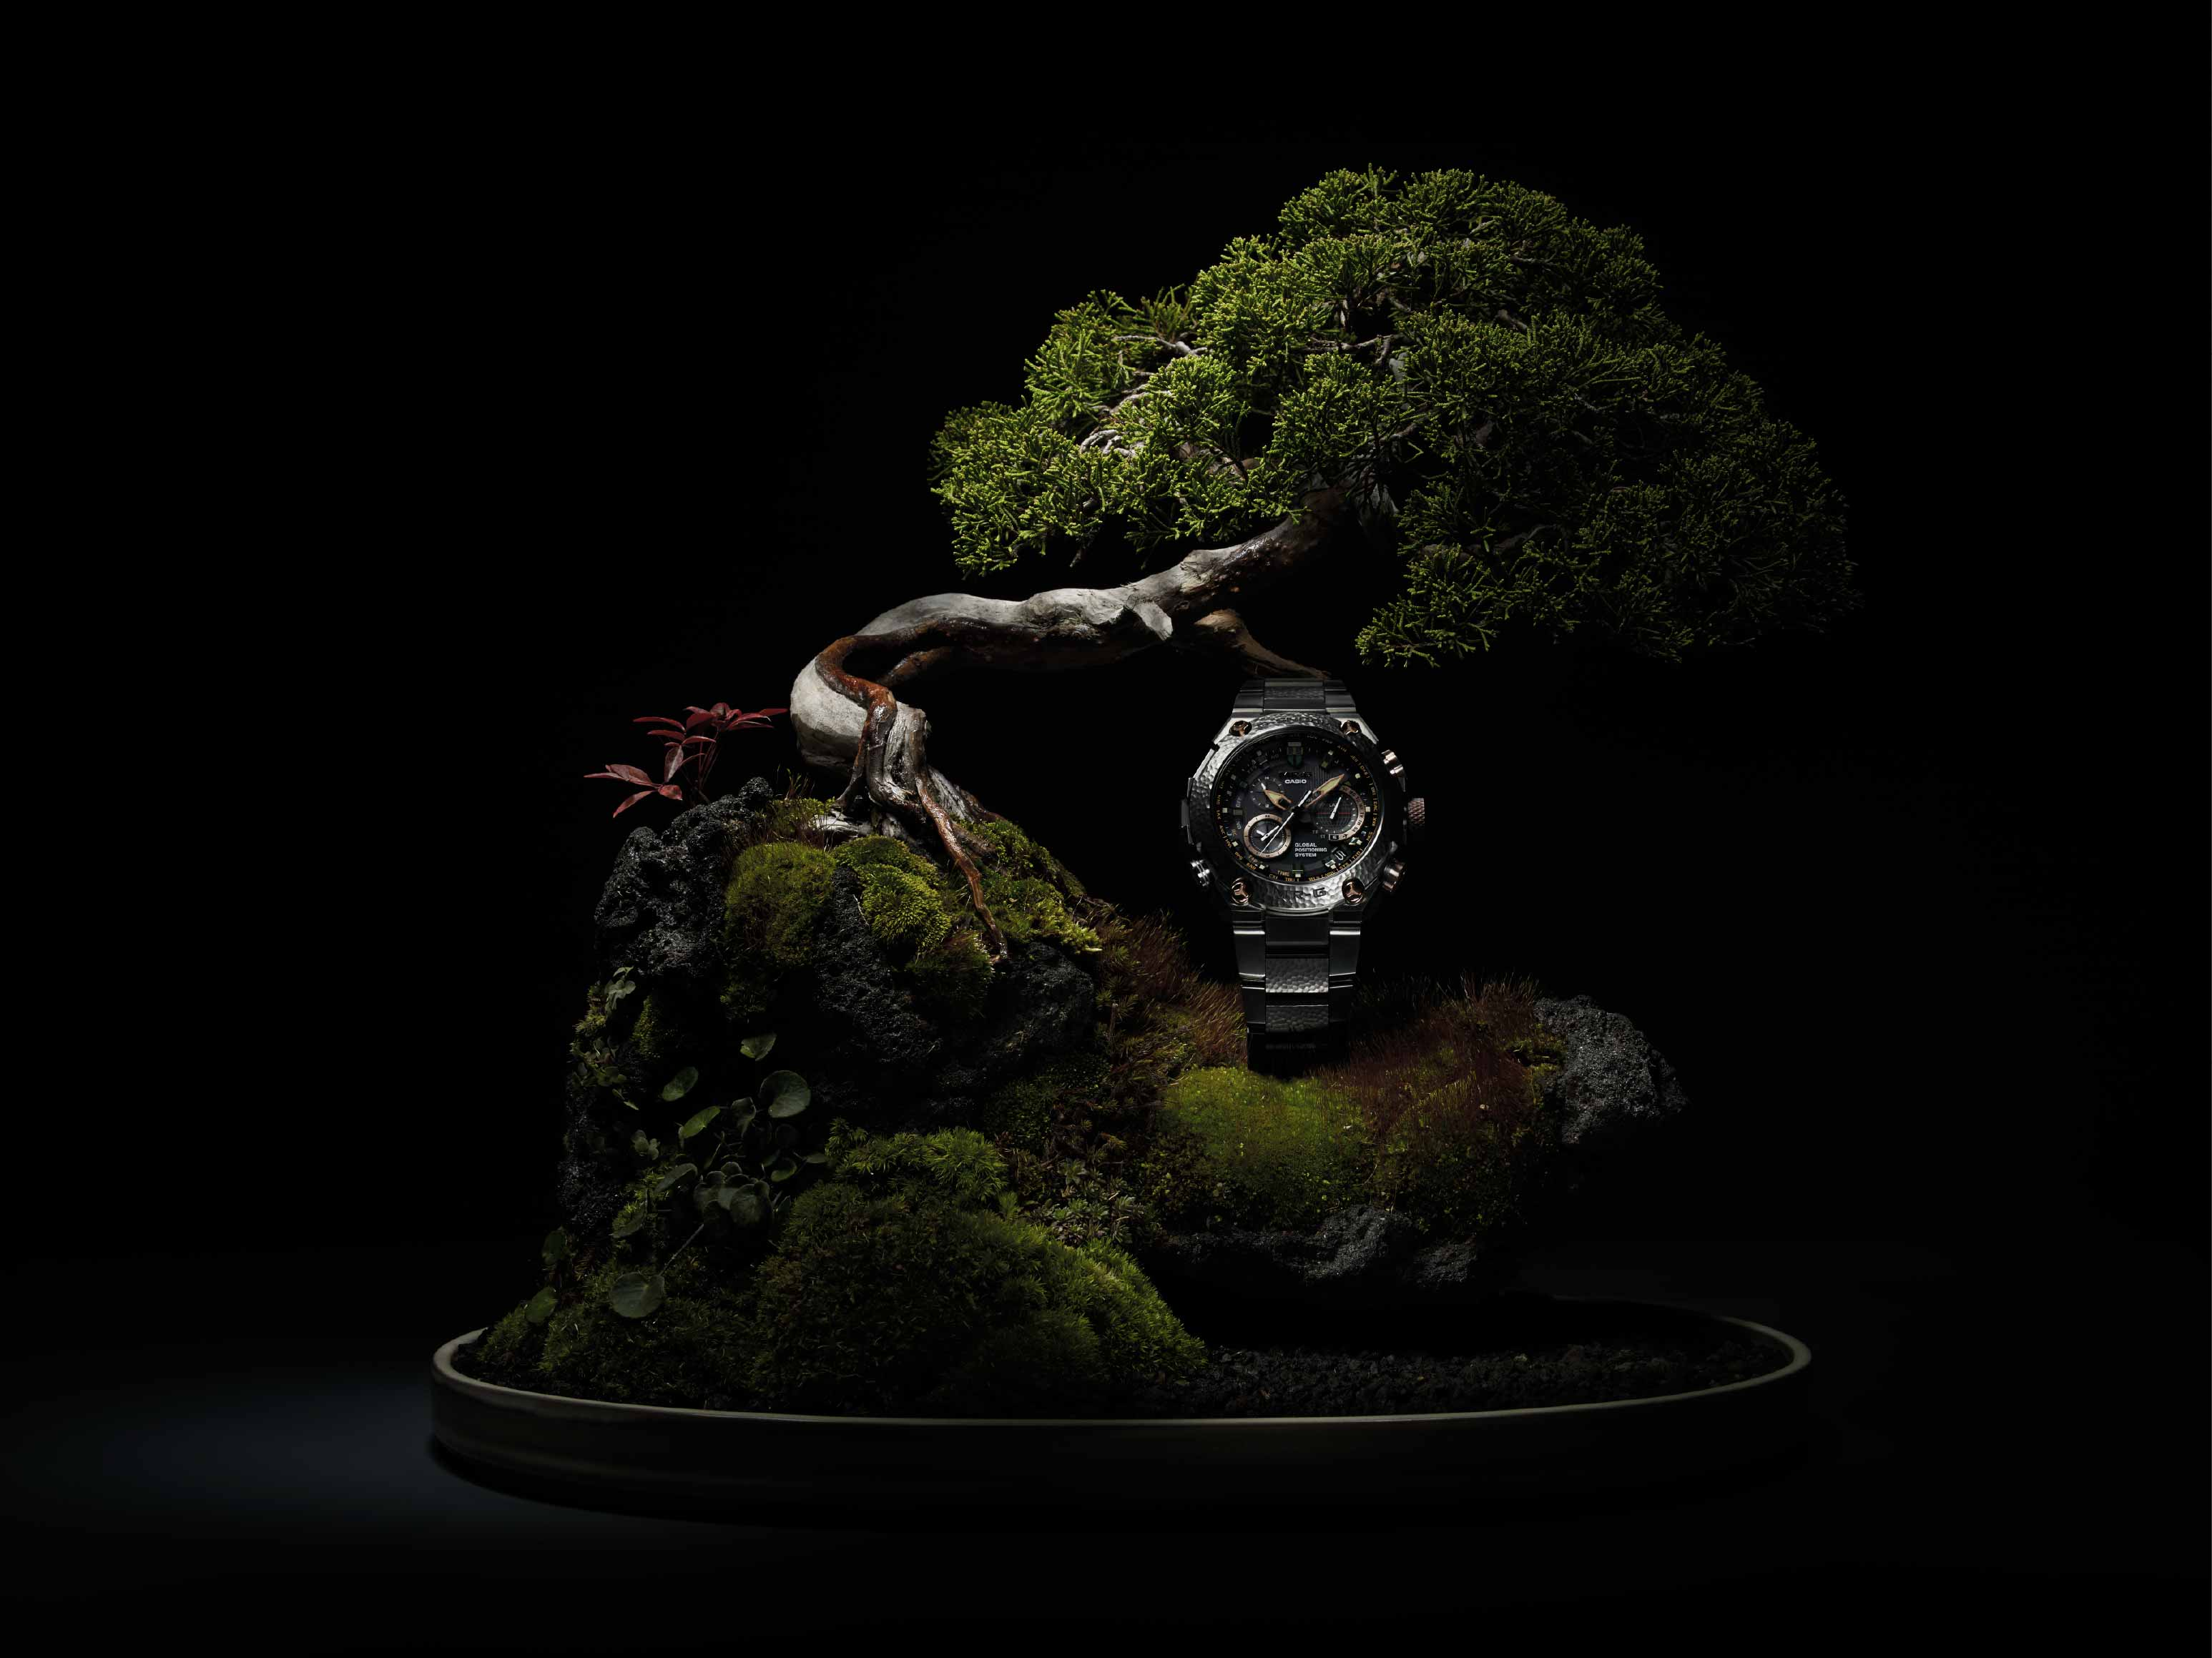 [Official] G-SHOCK TO RELEASE LIMITED EDITION MRG-G1000HT